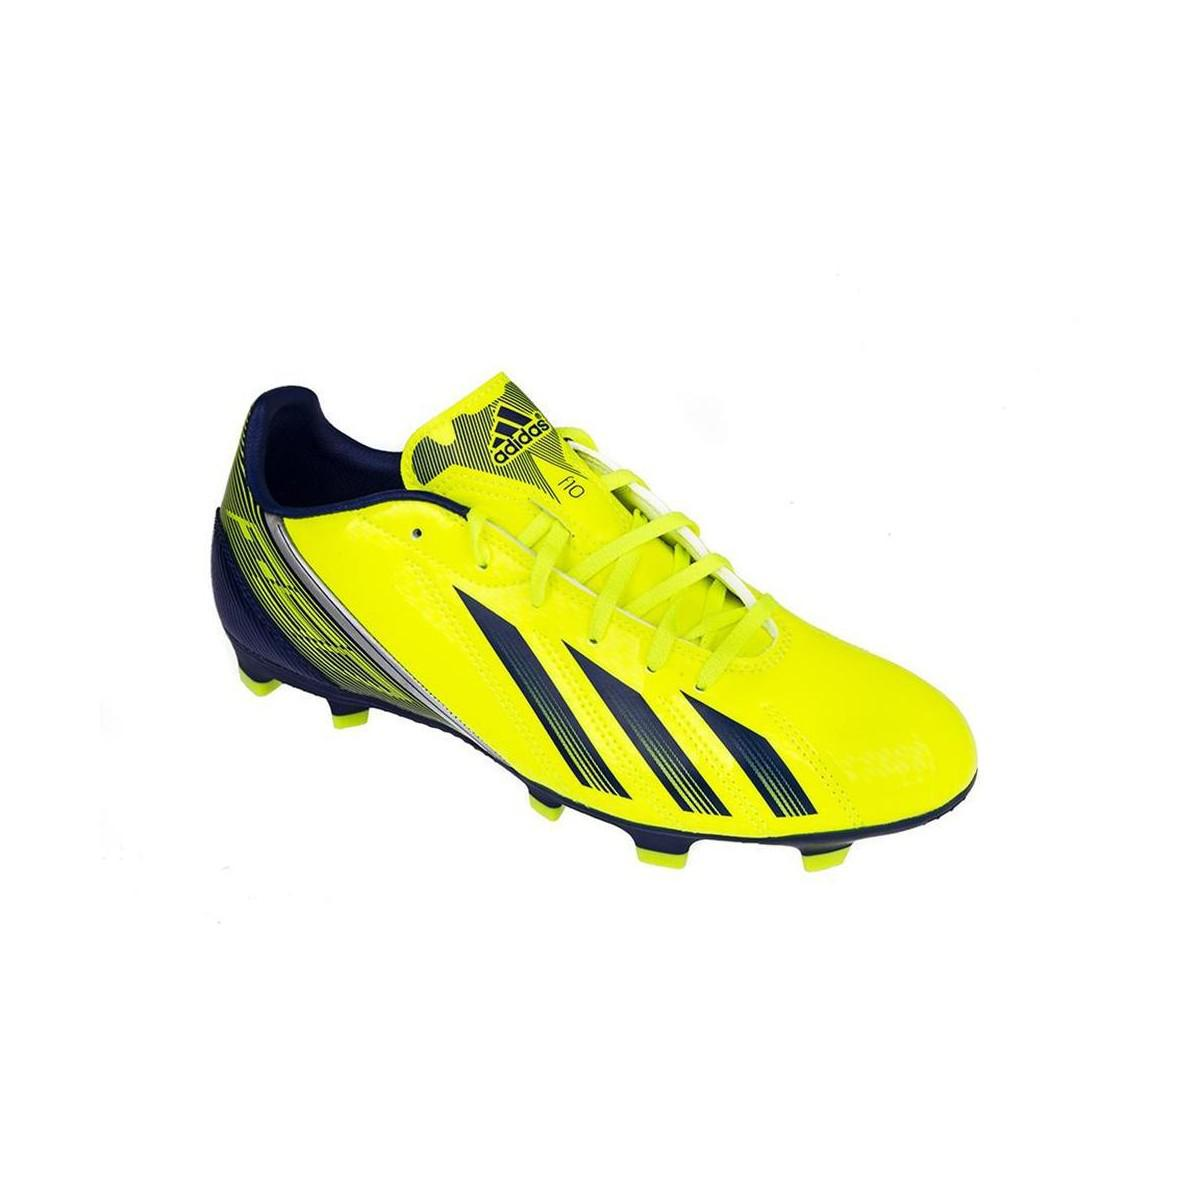 F10 Trx Ag- Yellow football shoes